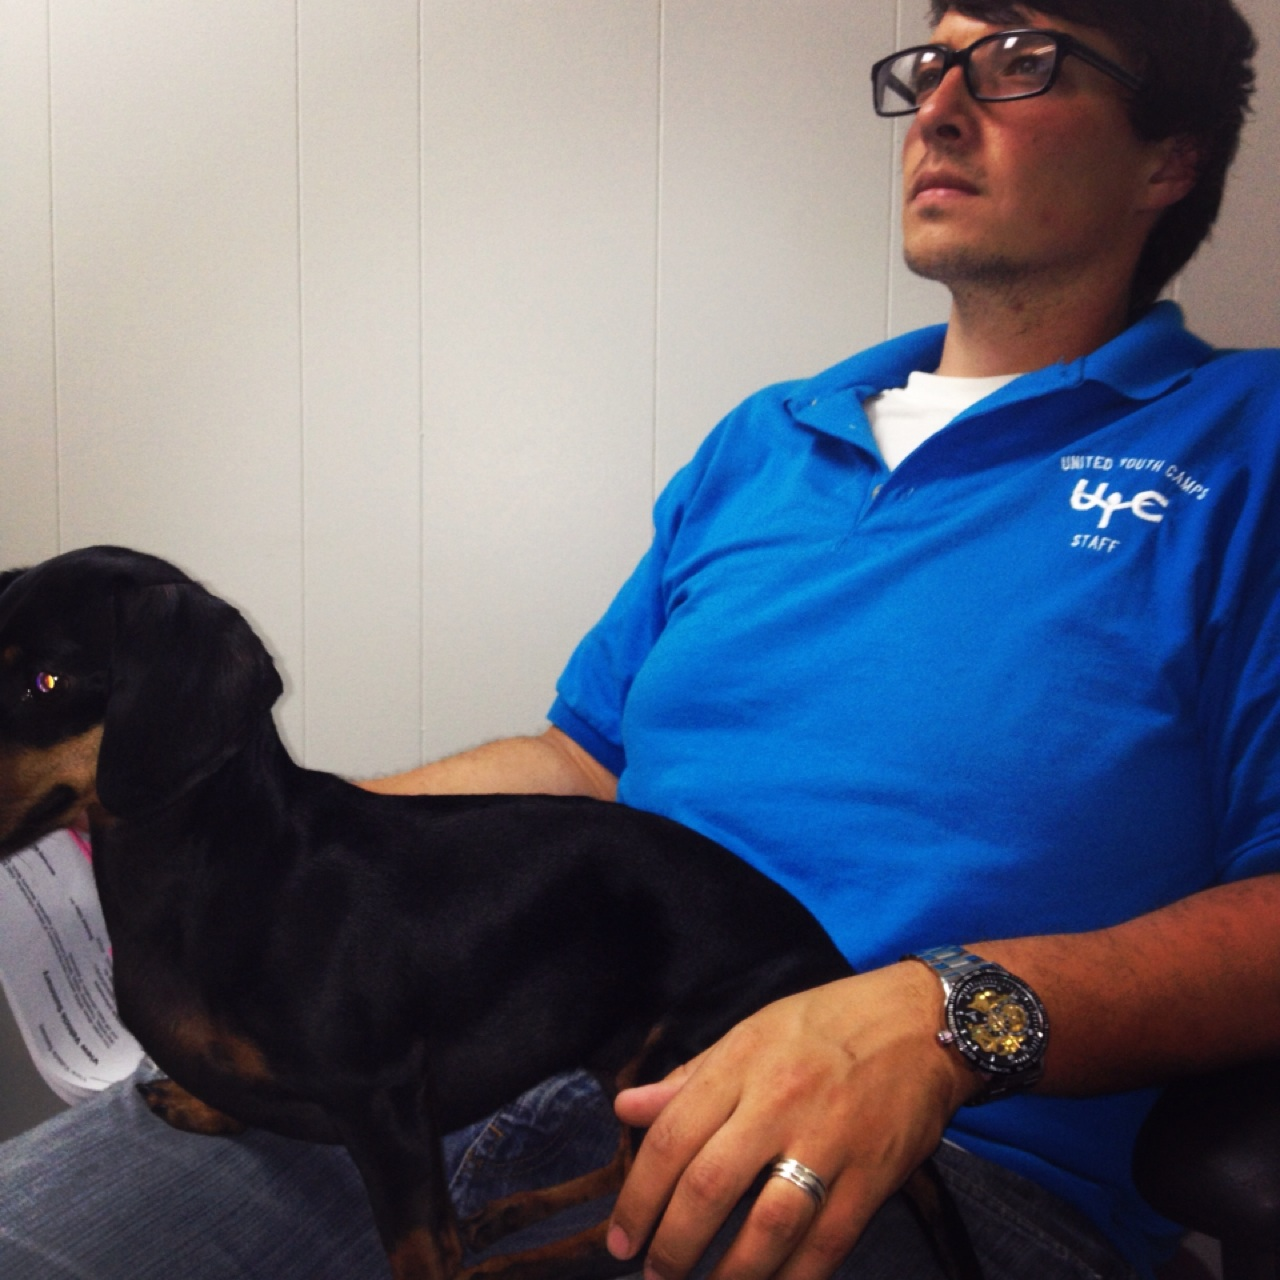 Dachshund love at a Chevy dealership